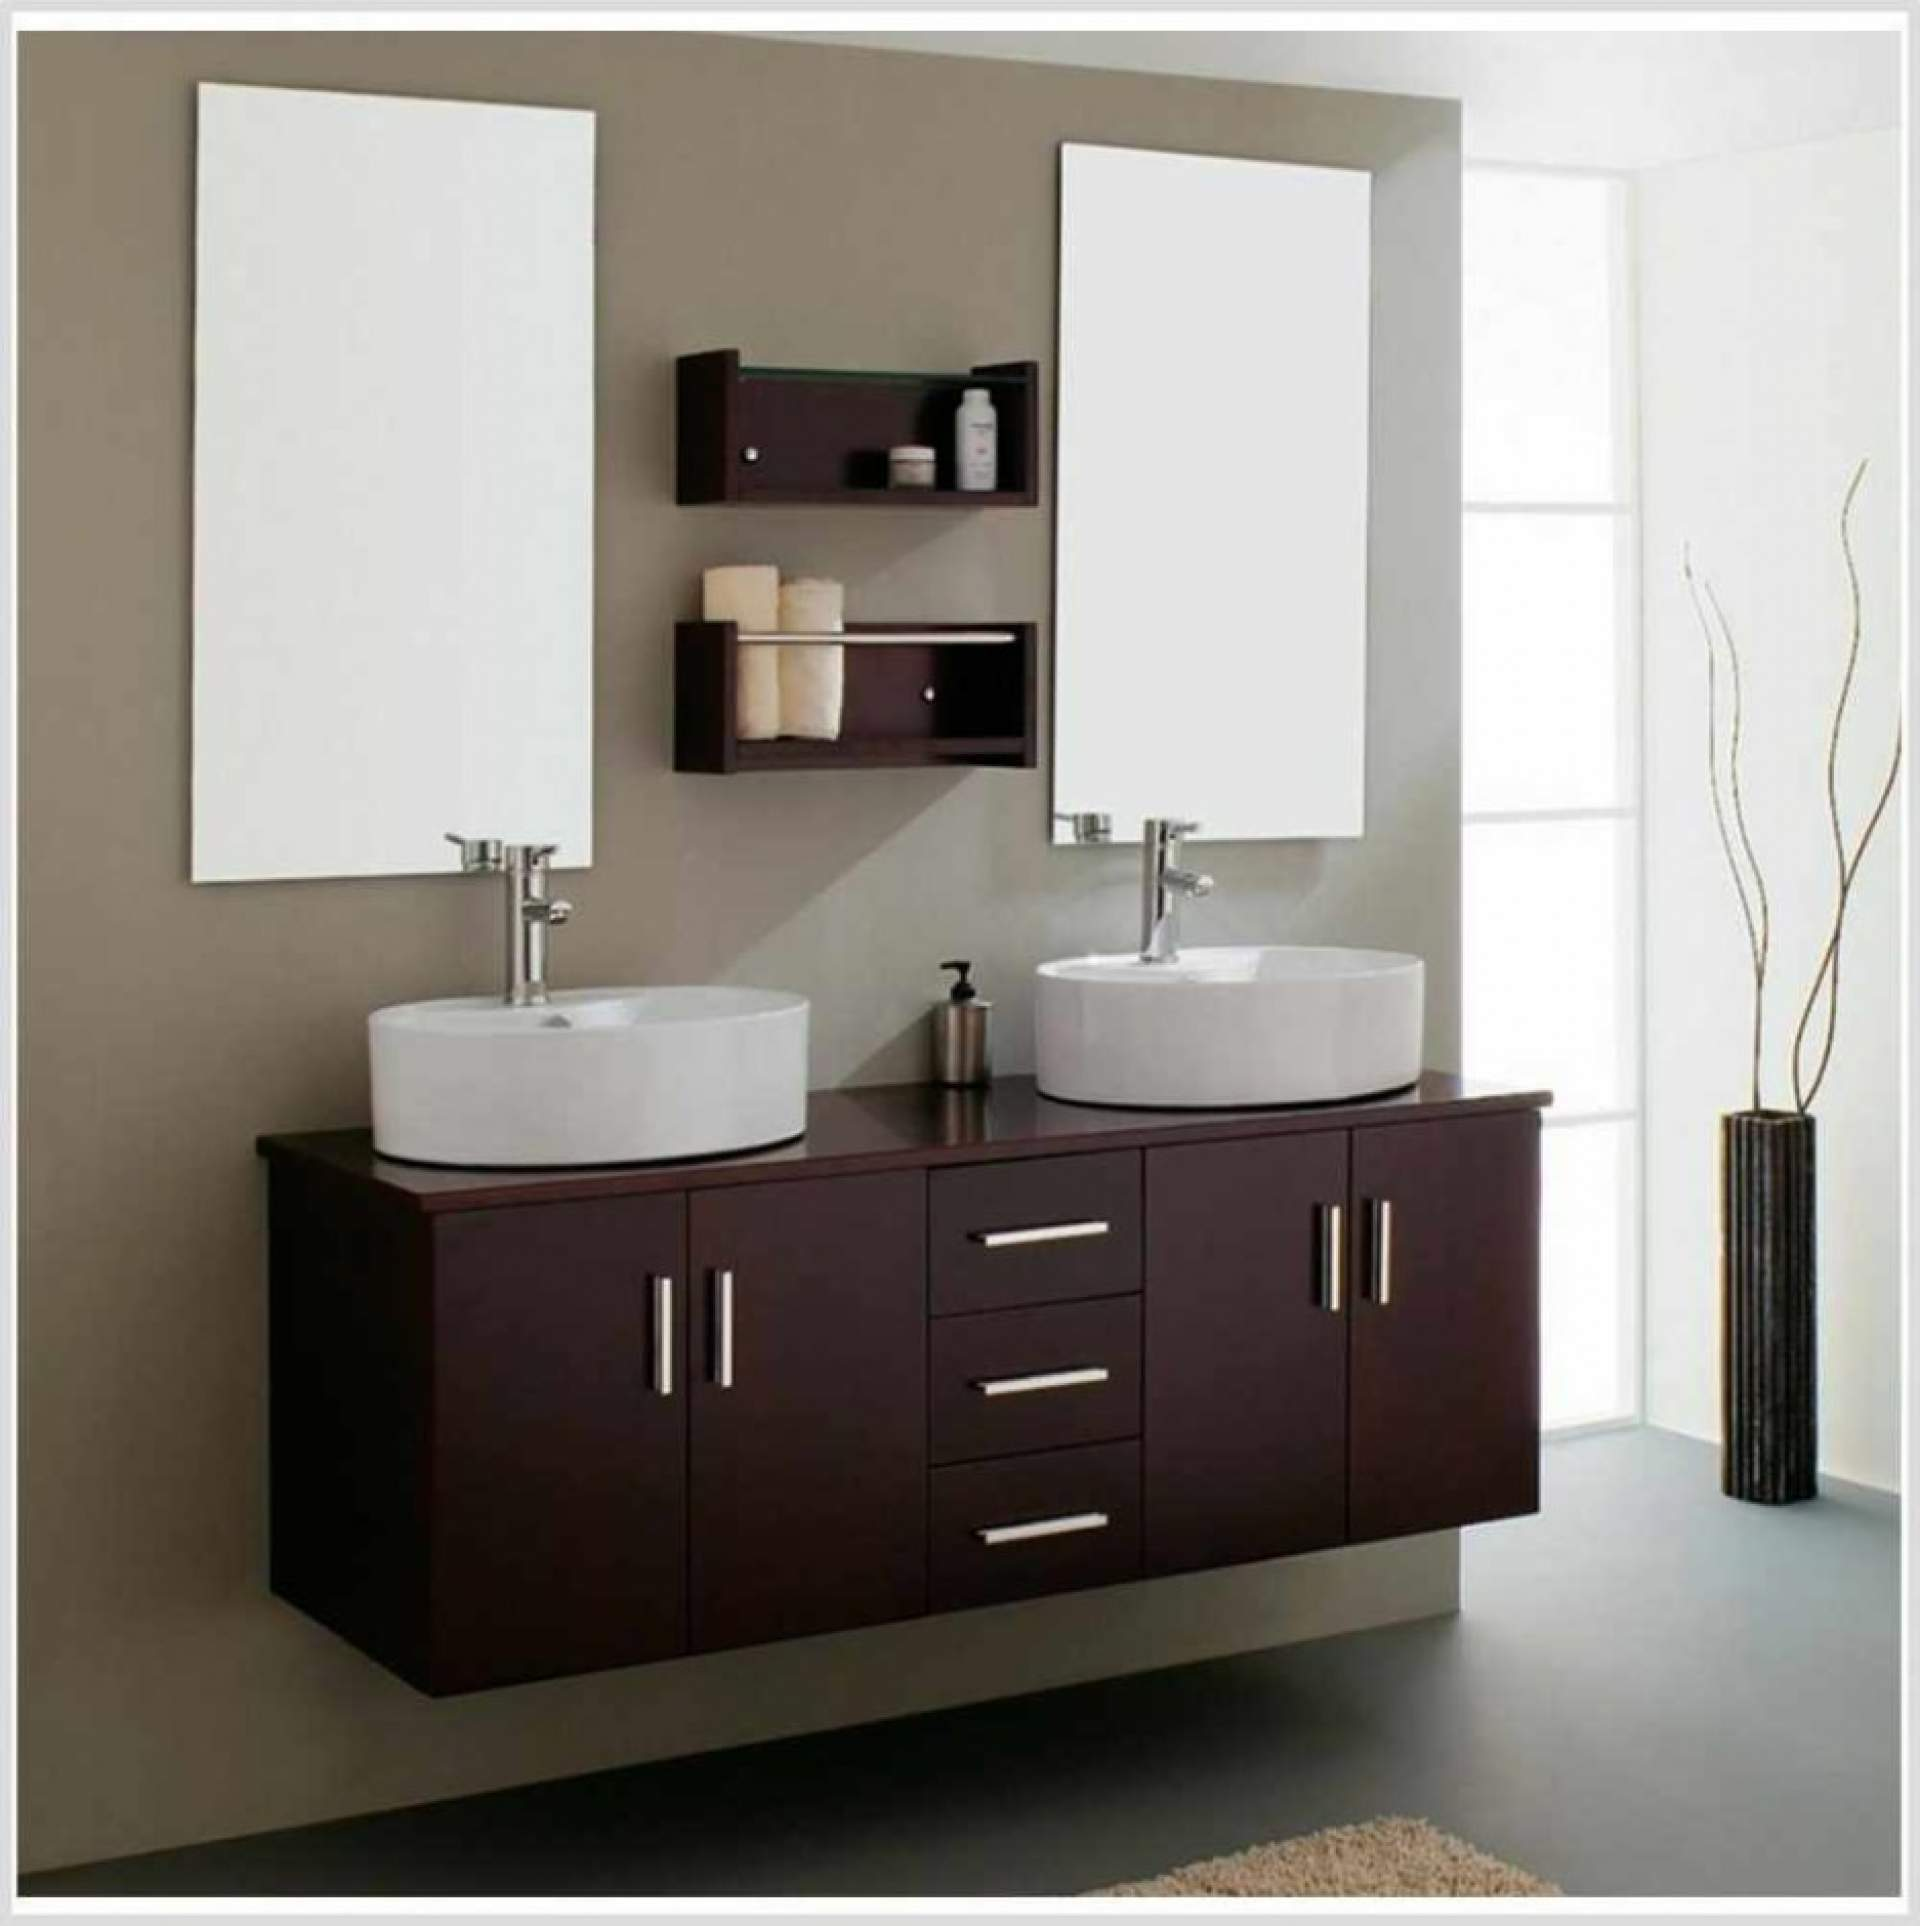 Luxurious Vanity also Double Sinks and Mounted Shelve Between White Bathroom Mirror